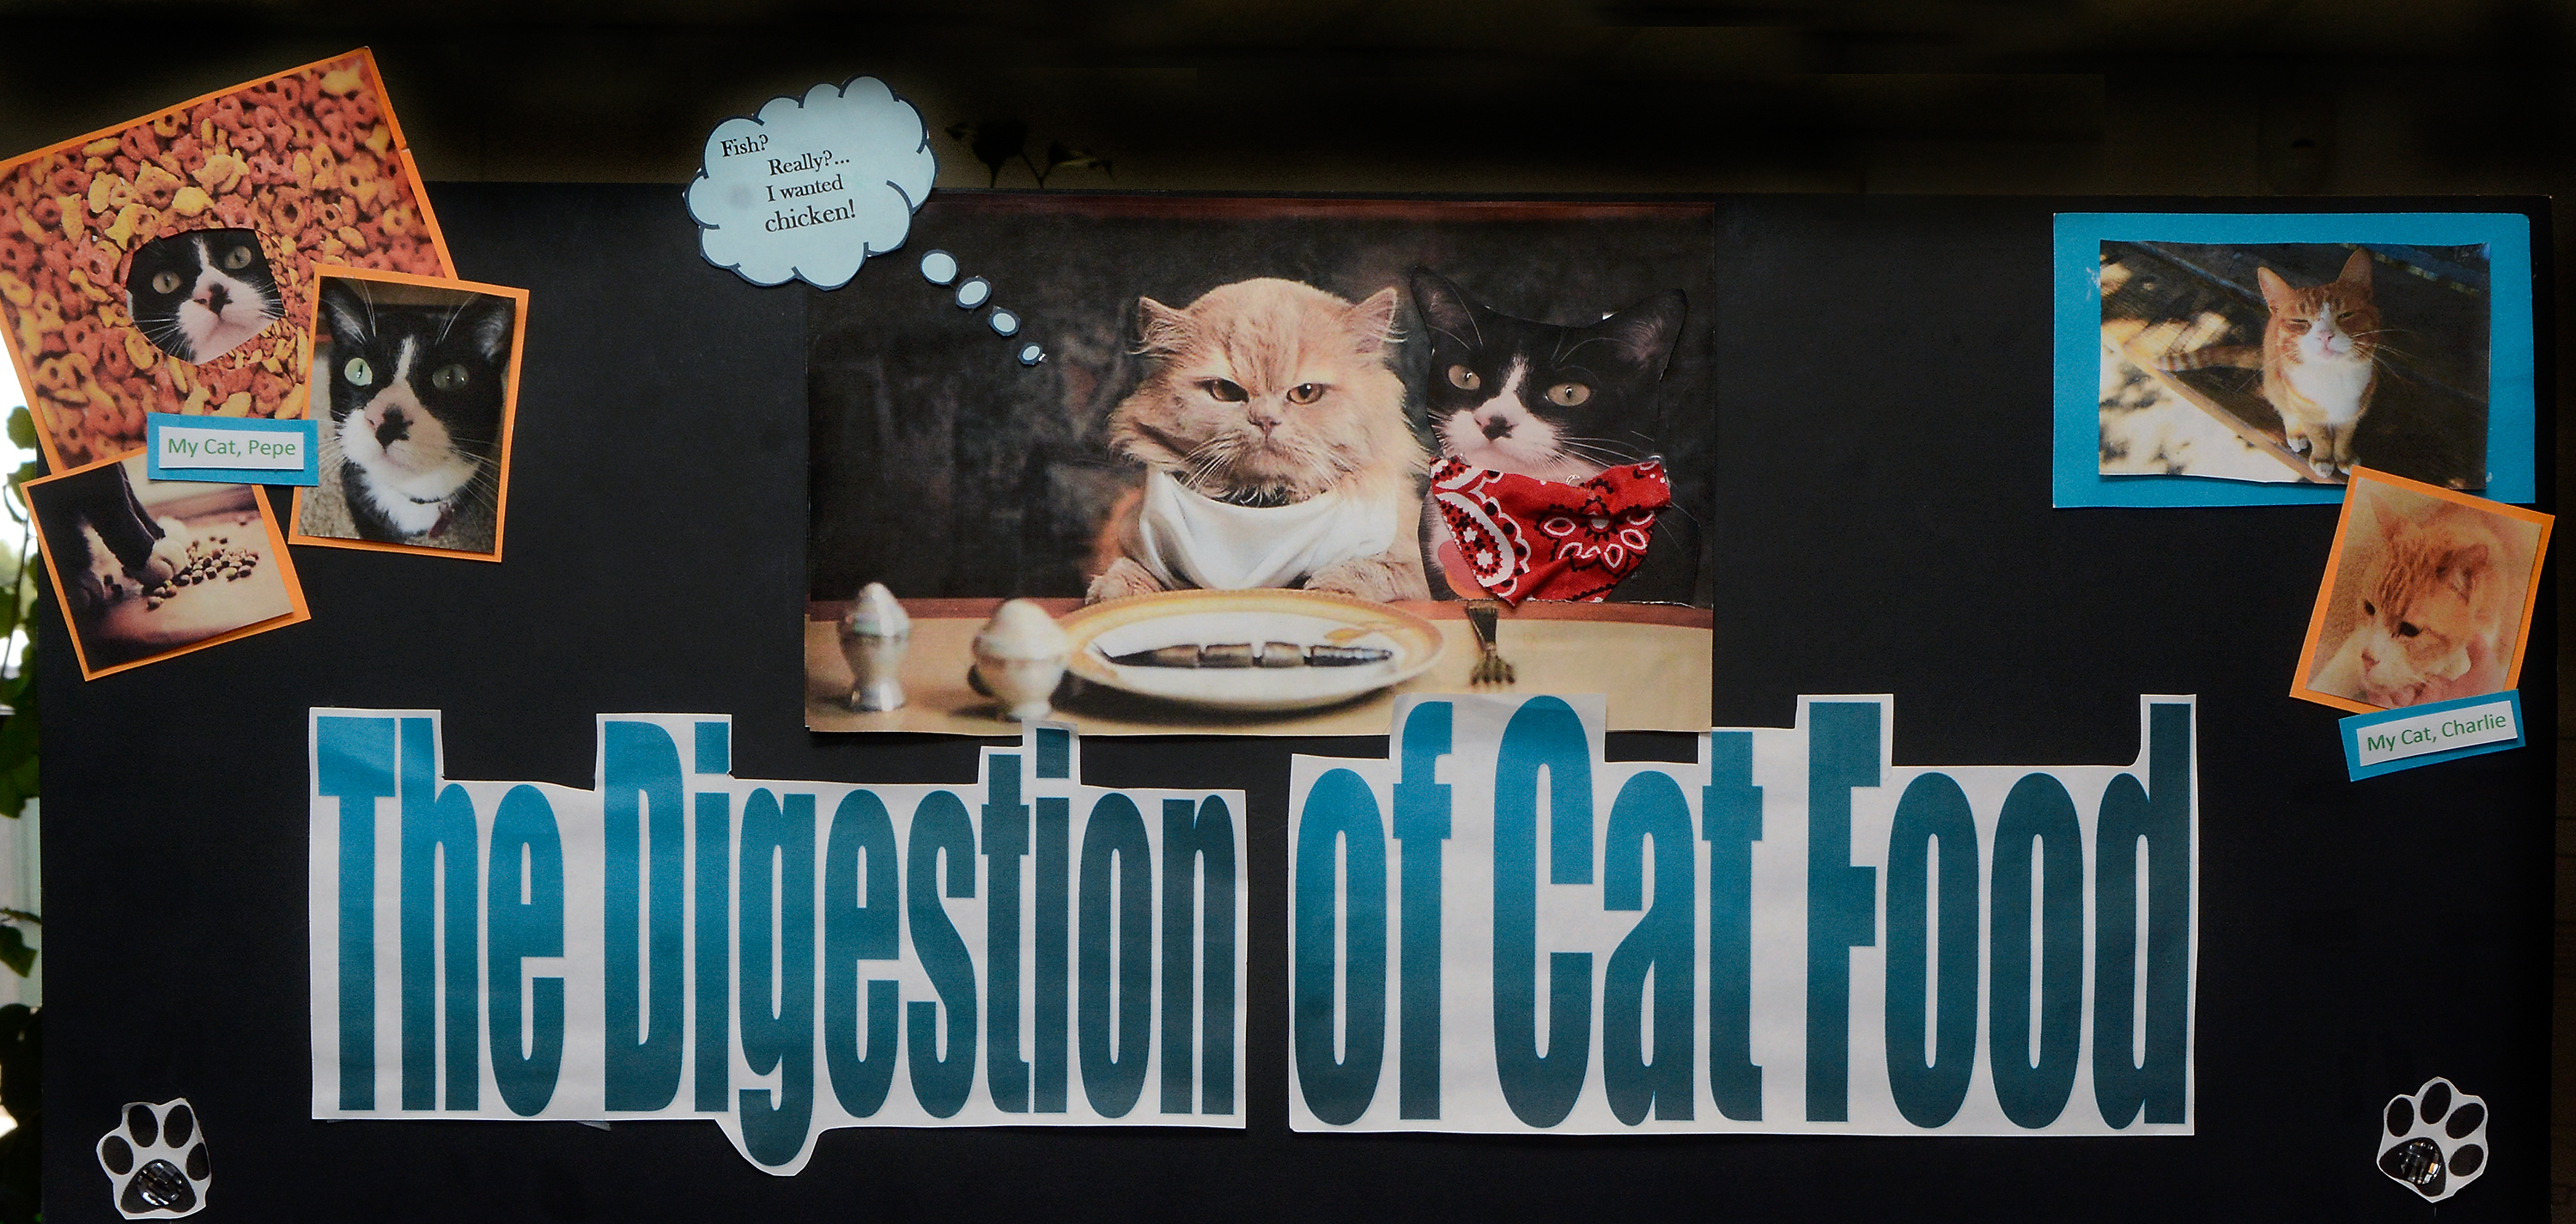 Cats and space the ticket for girls in science fair